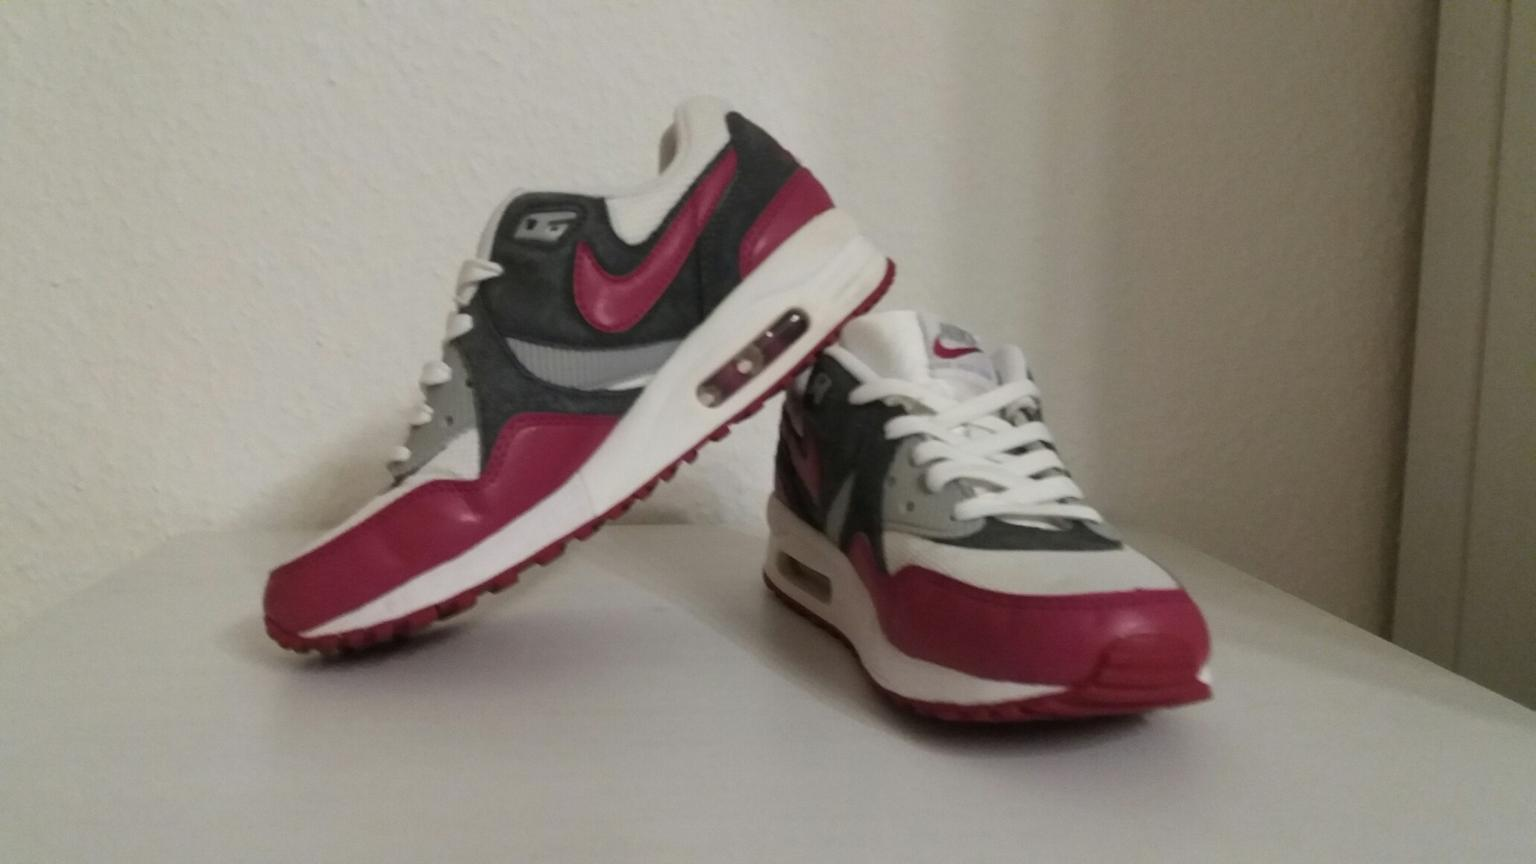 Nike Air Max in 24214 Gettorf for €45.00 for sale | Shpock